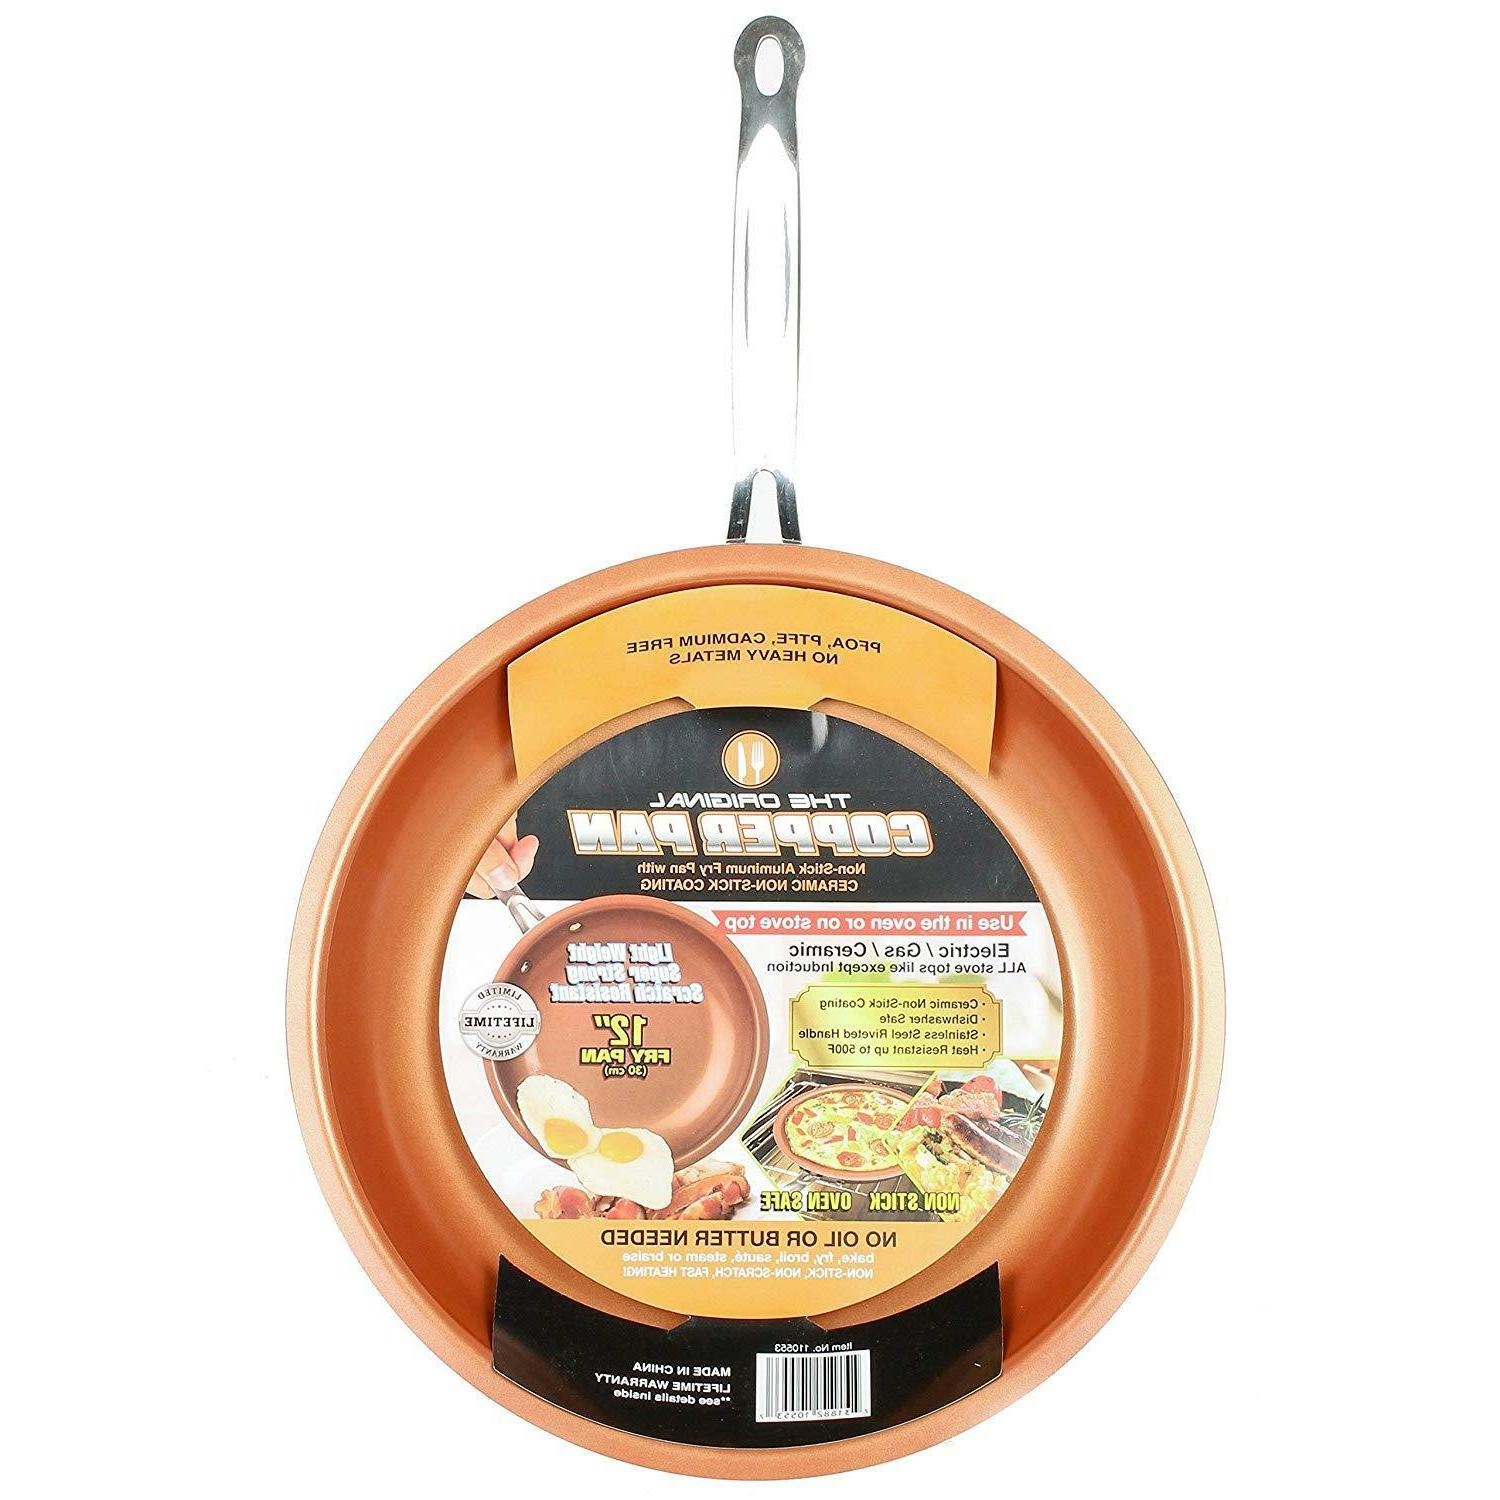 round nonstick fry pan 12 in copper